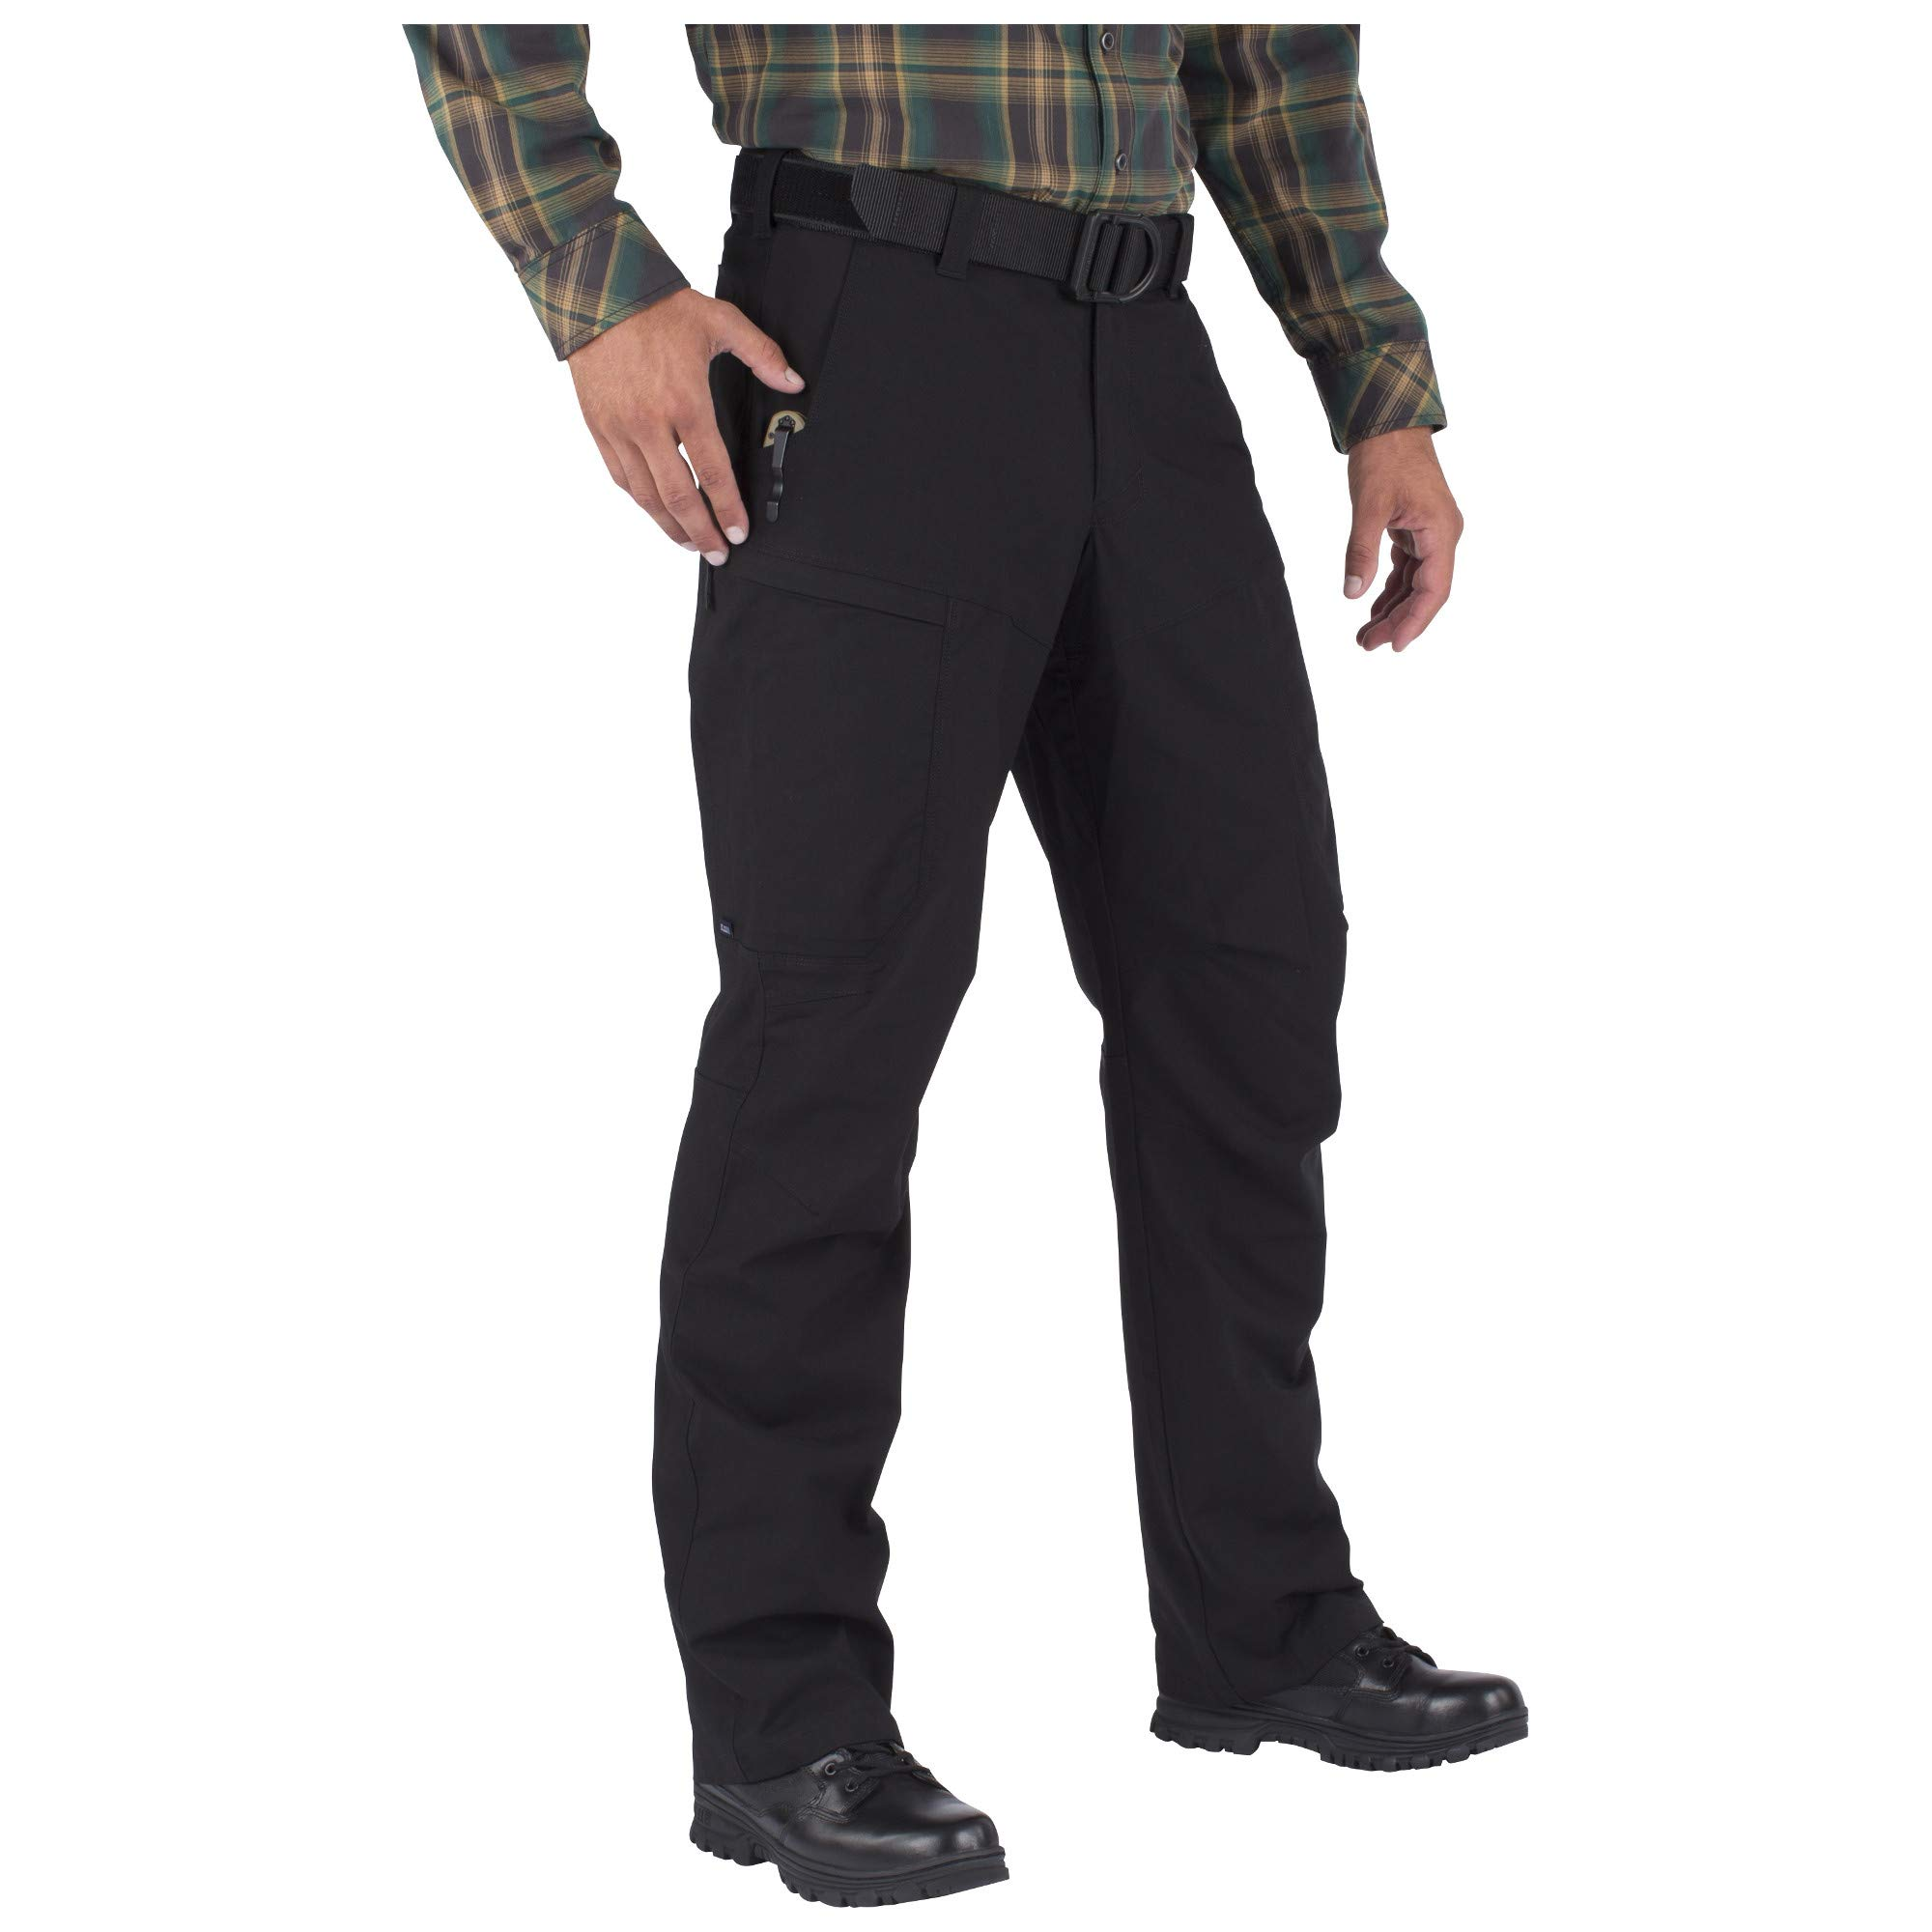 5.11 Men's APEX EDC Stealth Cargo Pocket Tactical Pant Style 74434, Black, 38W x 32L by 5.11